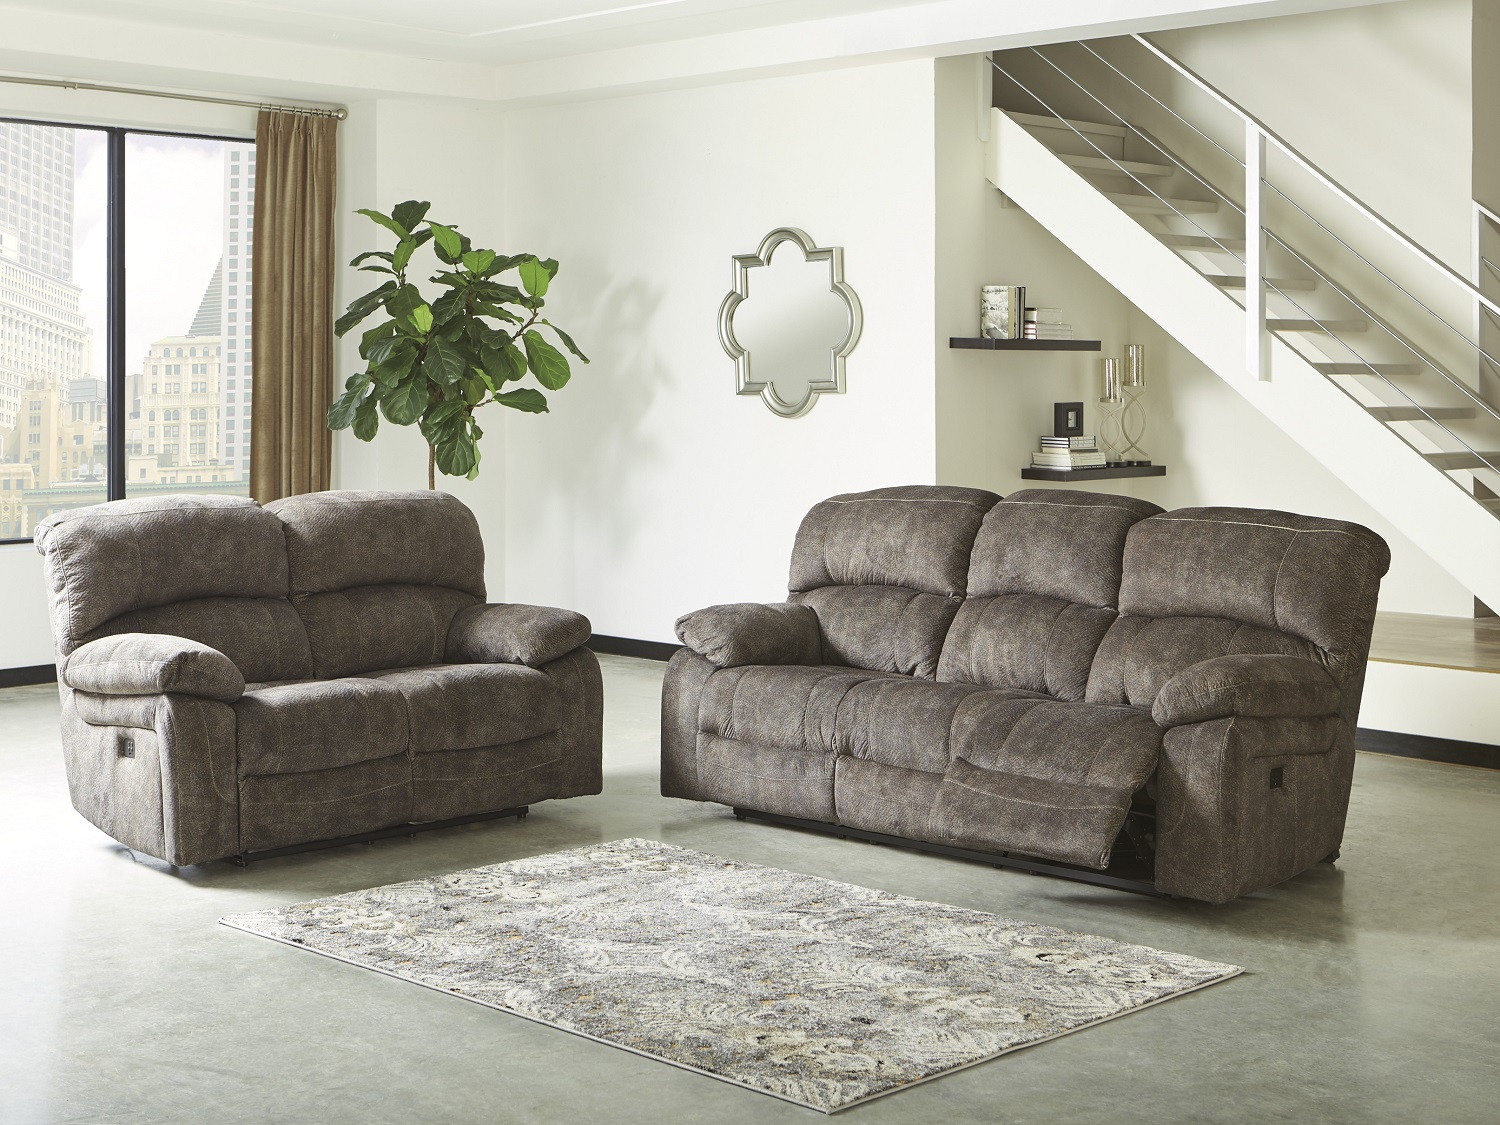 Cannelton, 183, Recliners by Midha Furniture to Brampton, Mississauga, Etobicoke, Toronto, Scraborough, Caledon, Oakville, Markham, Ajax, Pickering, Oshawa, Richmondhill, Kitchener, Hamilton and GTA area